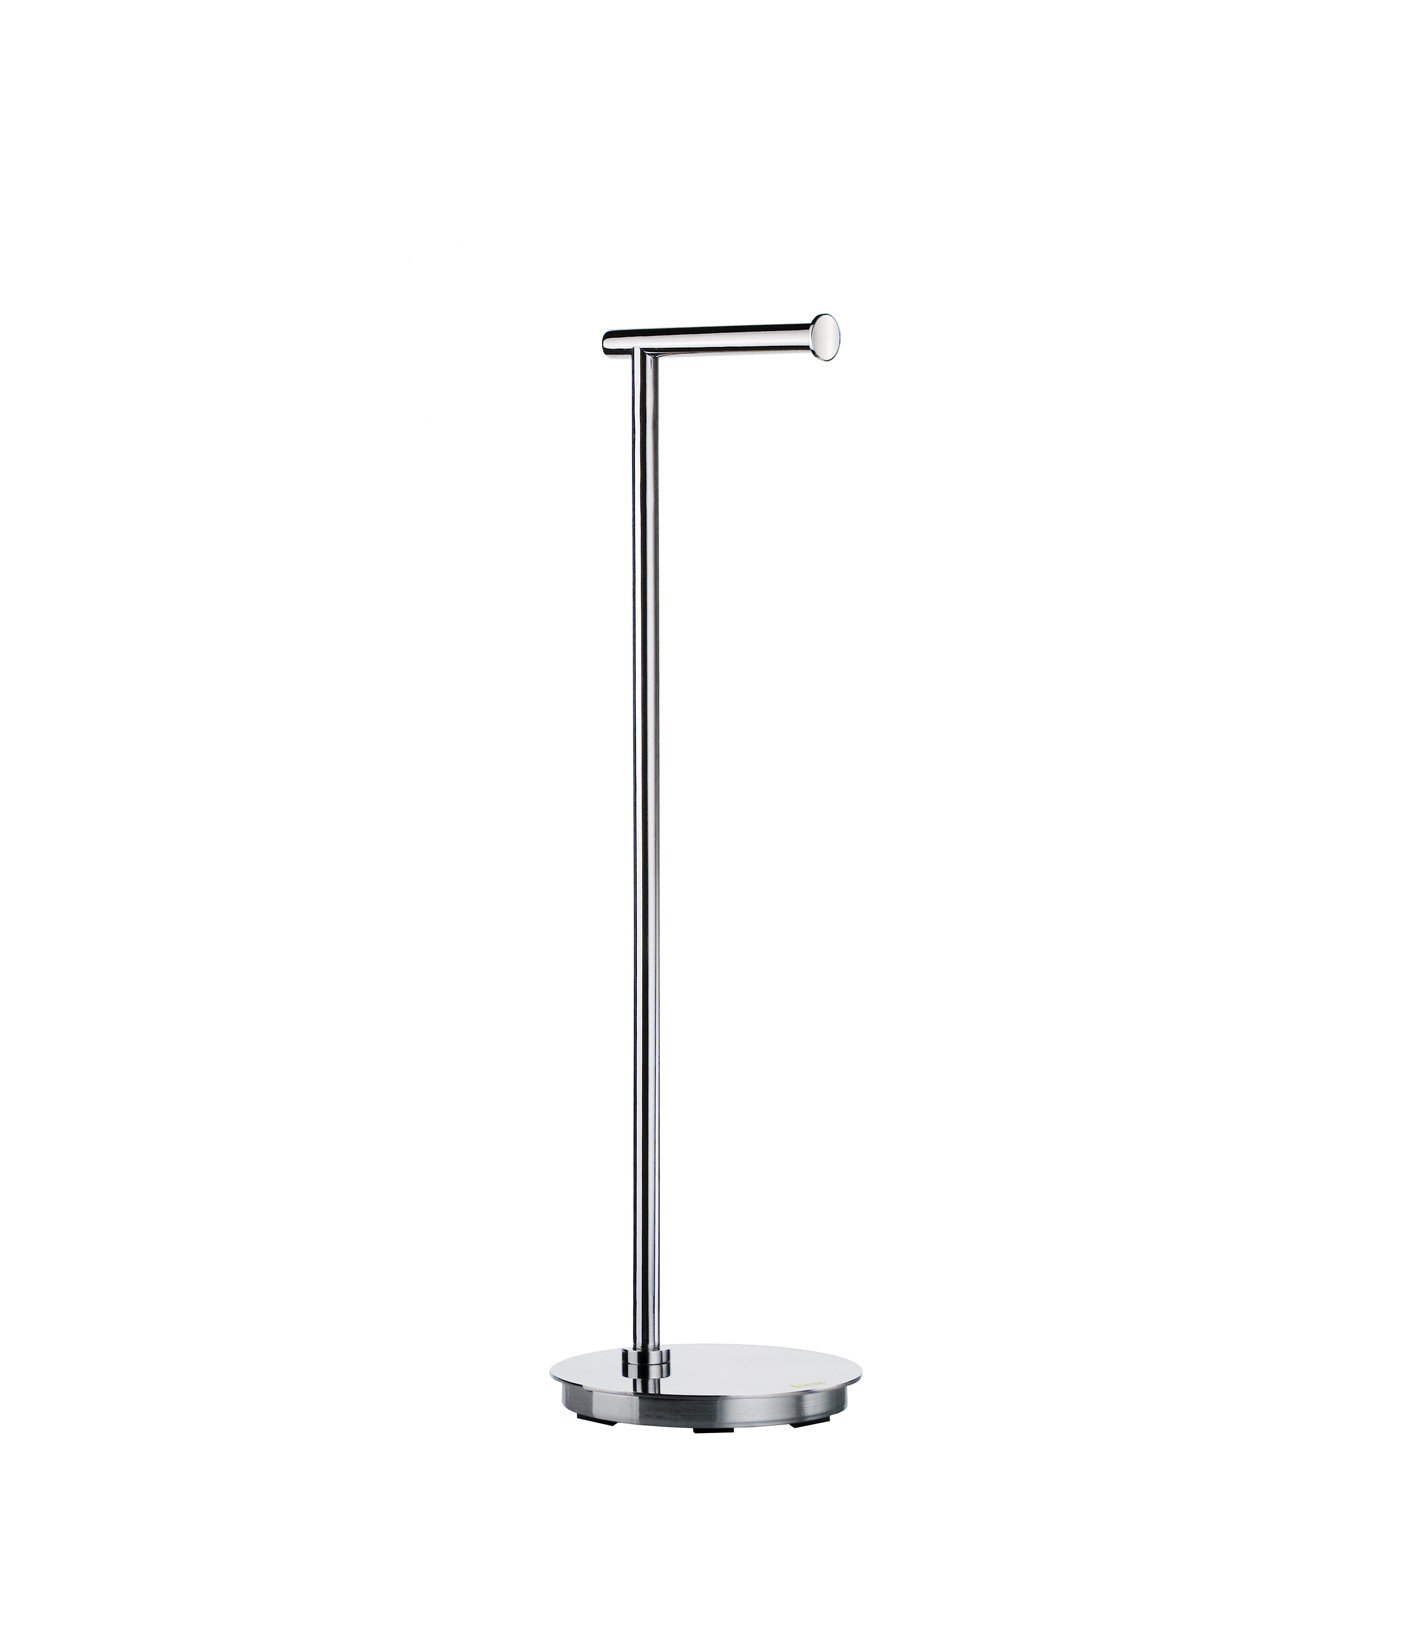 Smedbo SME_FK606 Free Standing Toilet Roll Euro Holder, Stainless Steel Polished